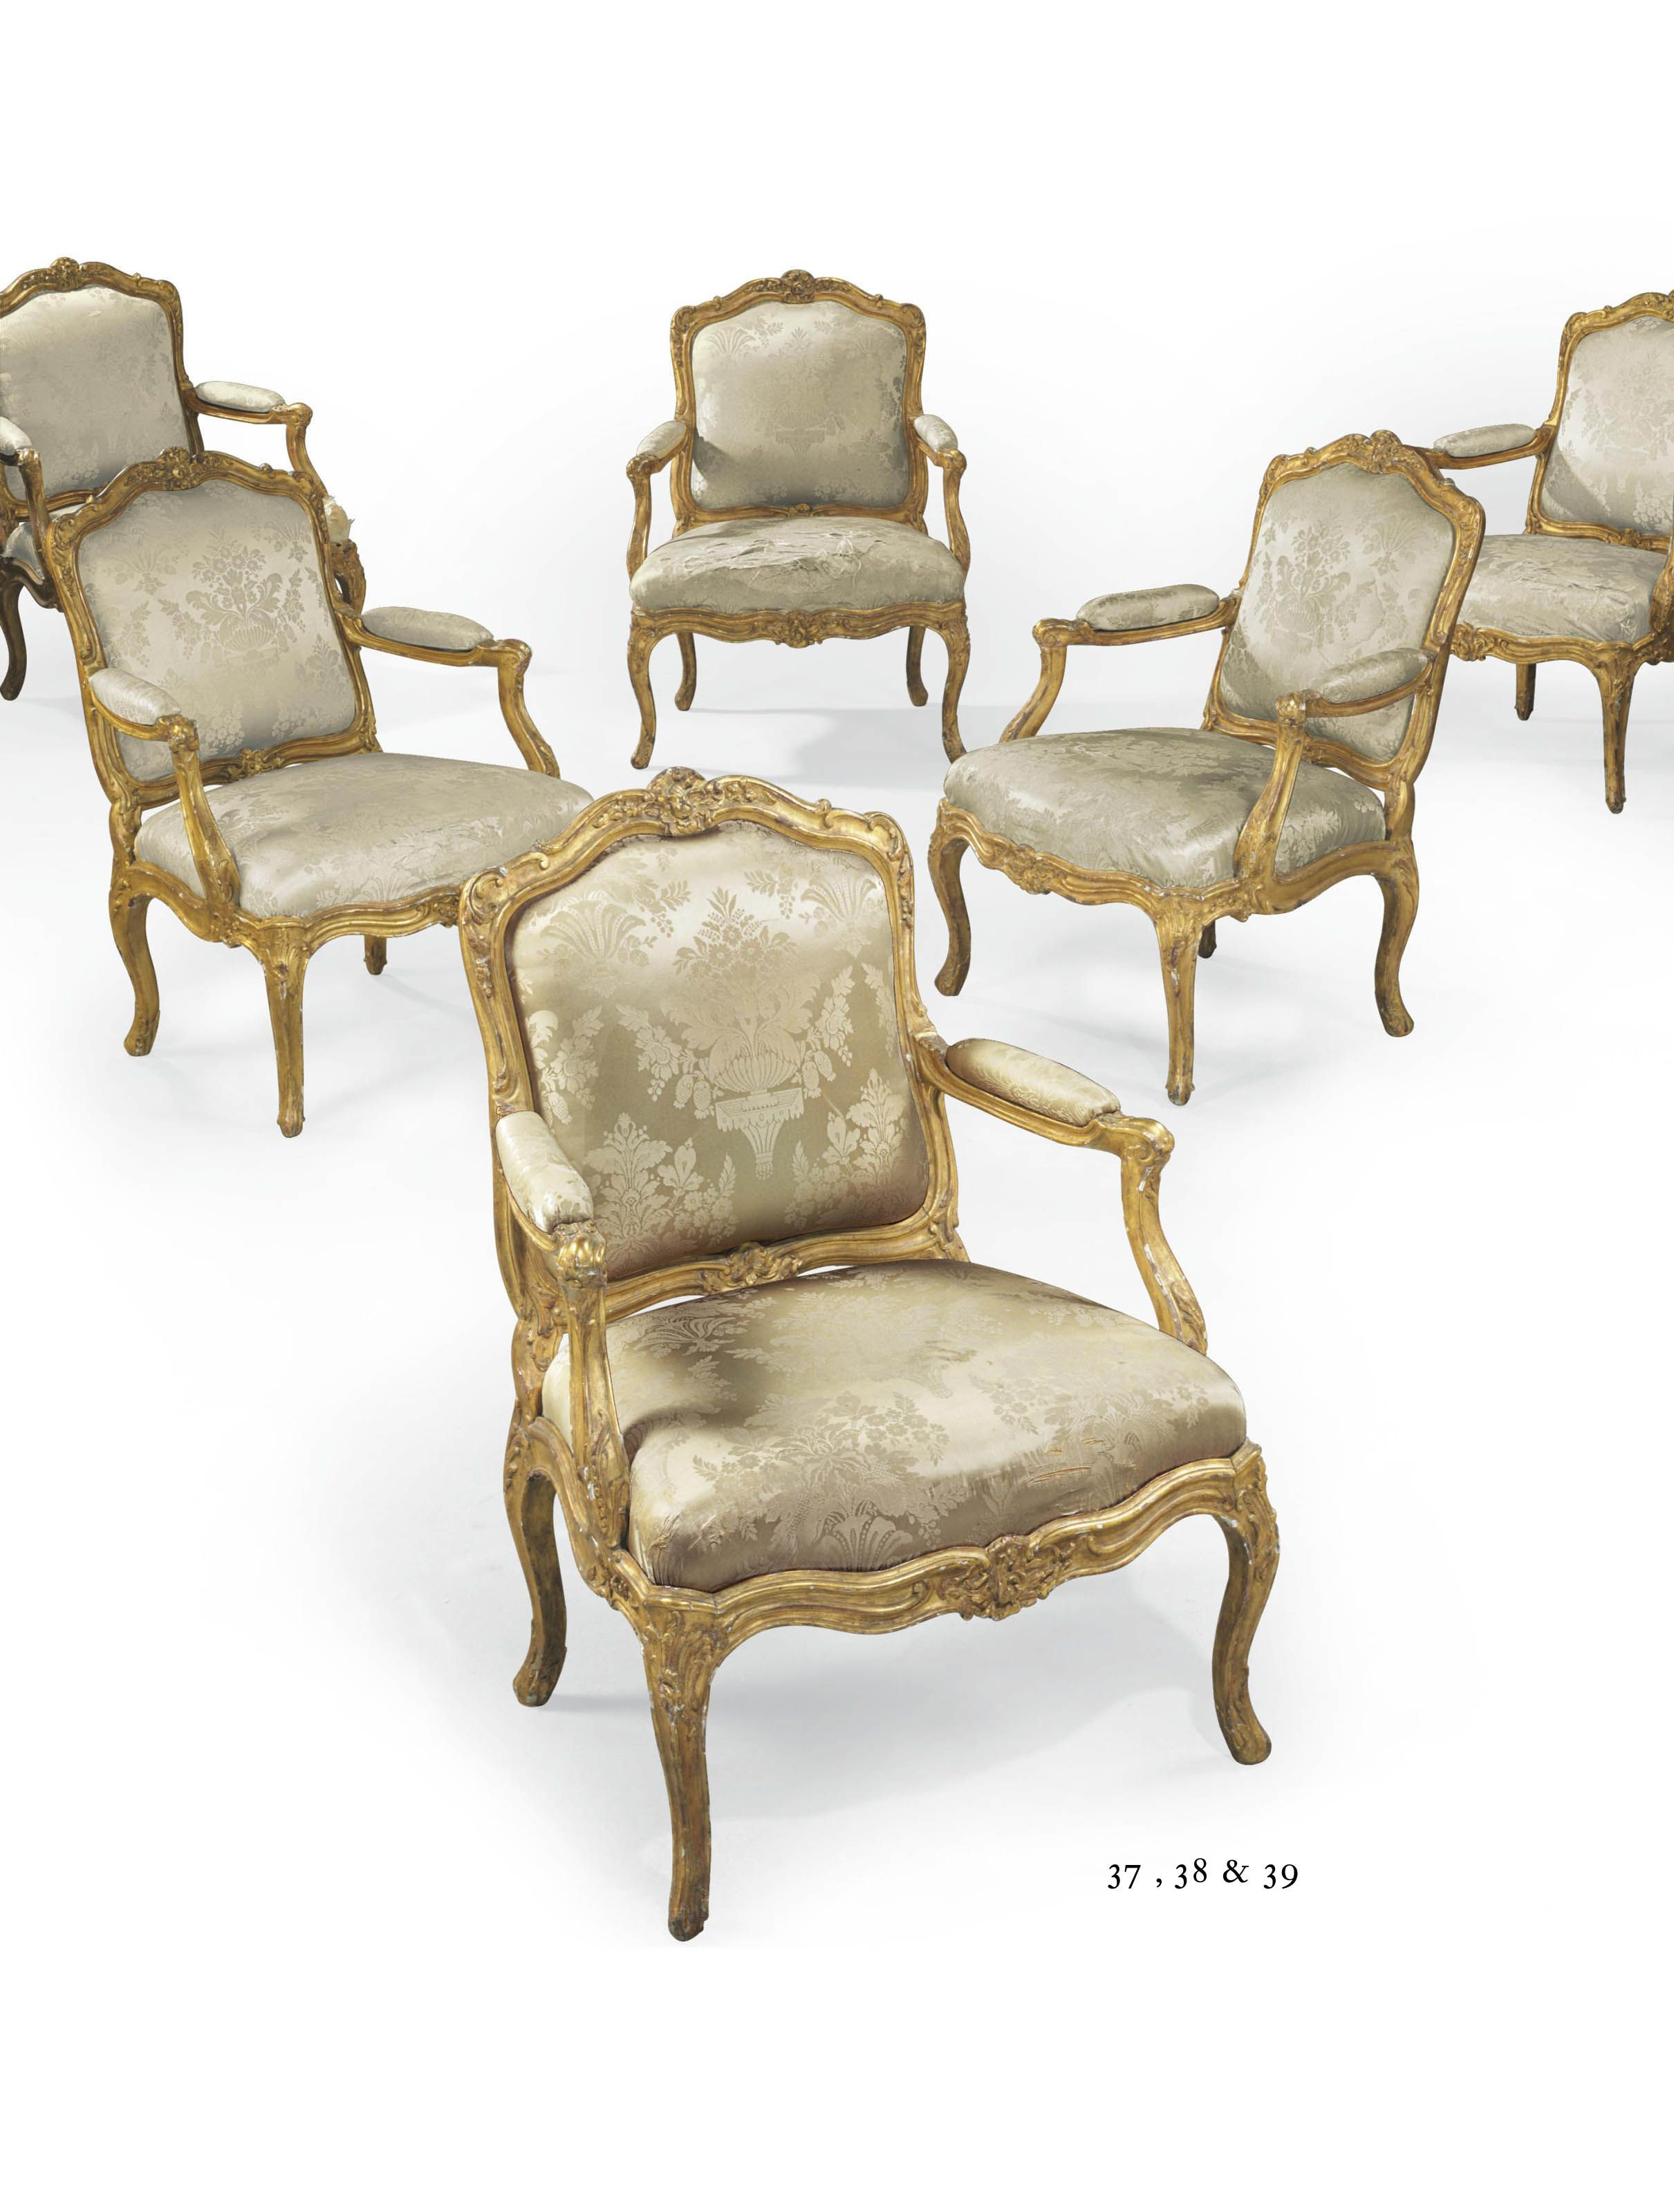 c1740 A PAIR OF LOUIS XV GILTWOOD FAUTEUILS CIRCA 1740 Price realised USD 40,000